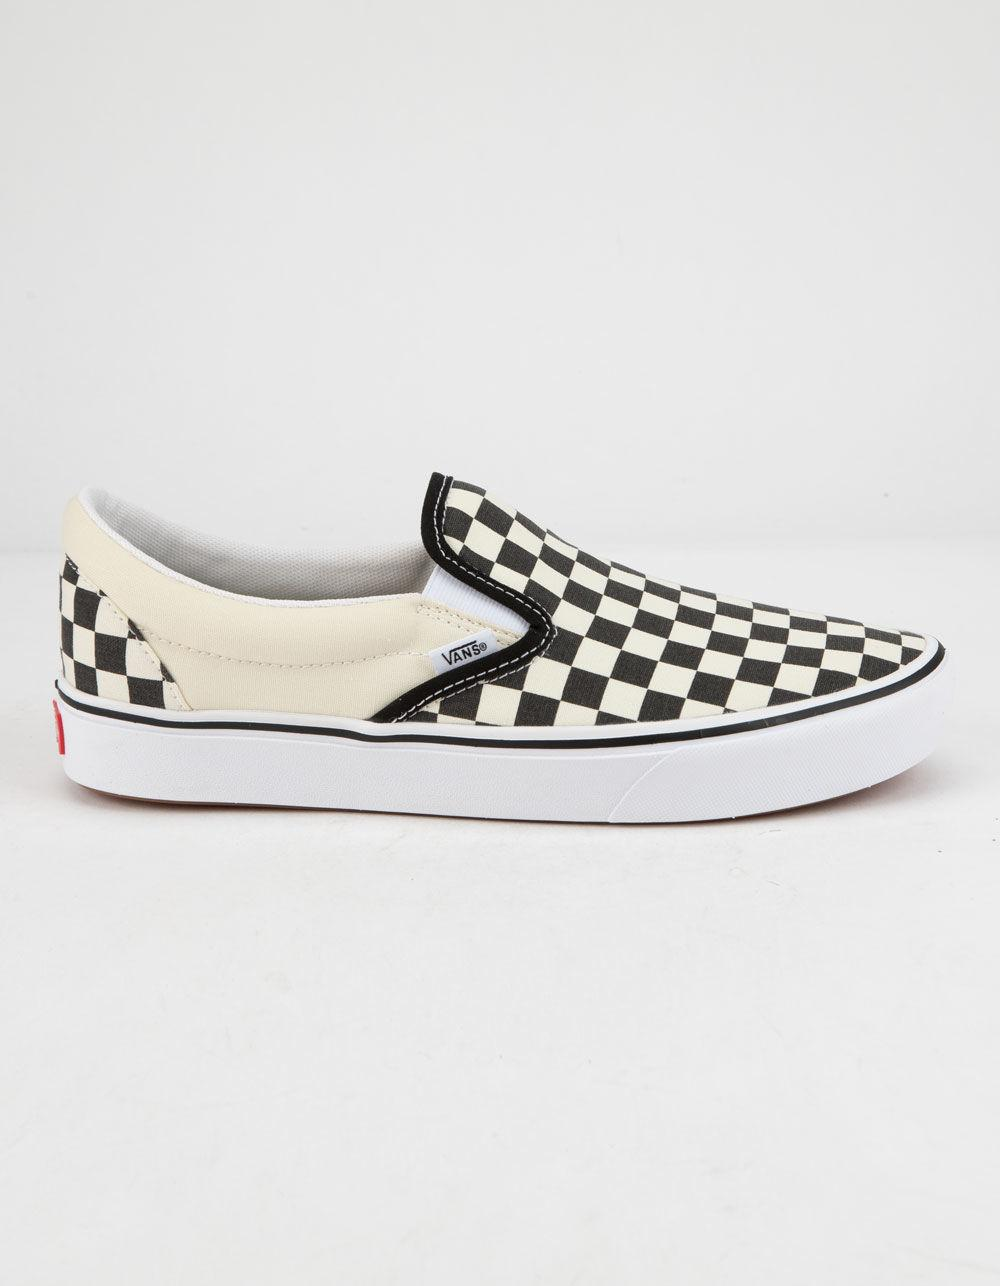 31fa8586730a Vans - Multicolor Comfycush Checkerboard Classic Slip-on Shoes - Lyst. View  fullscreen